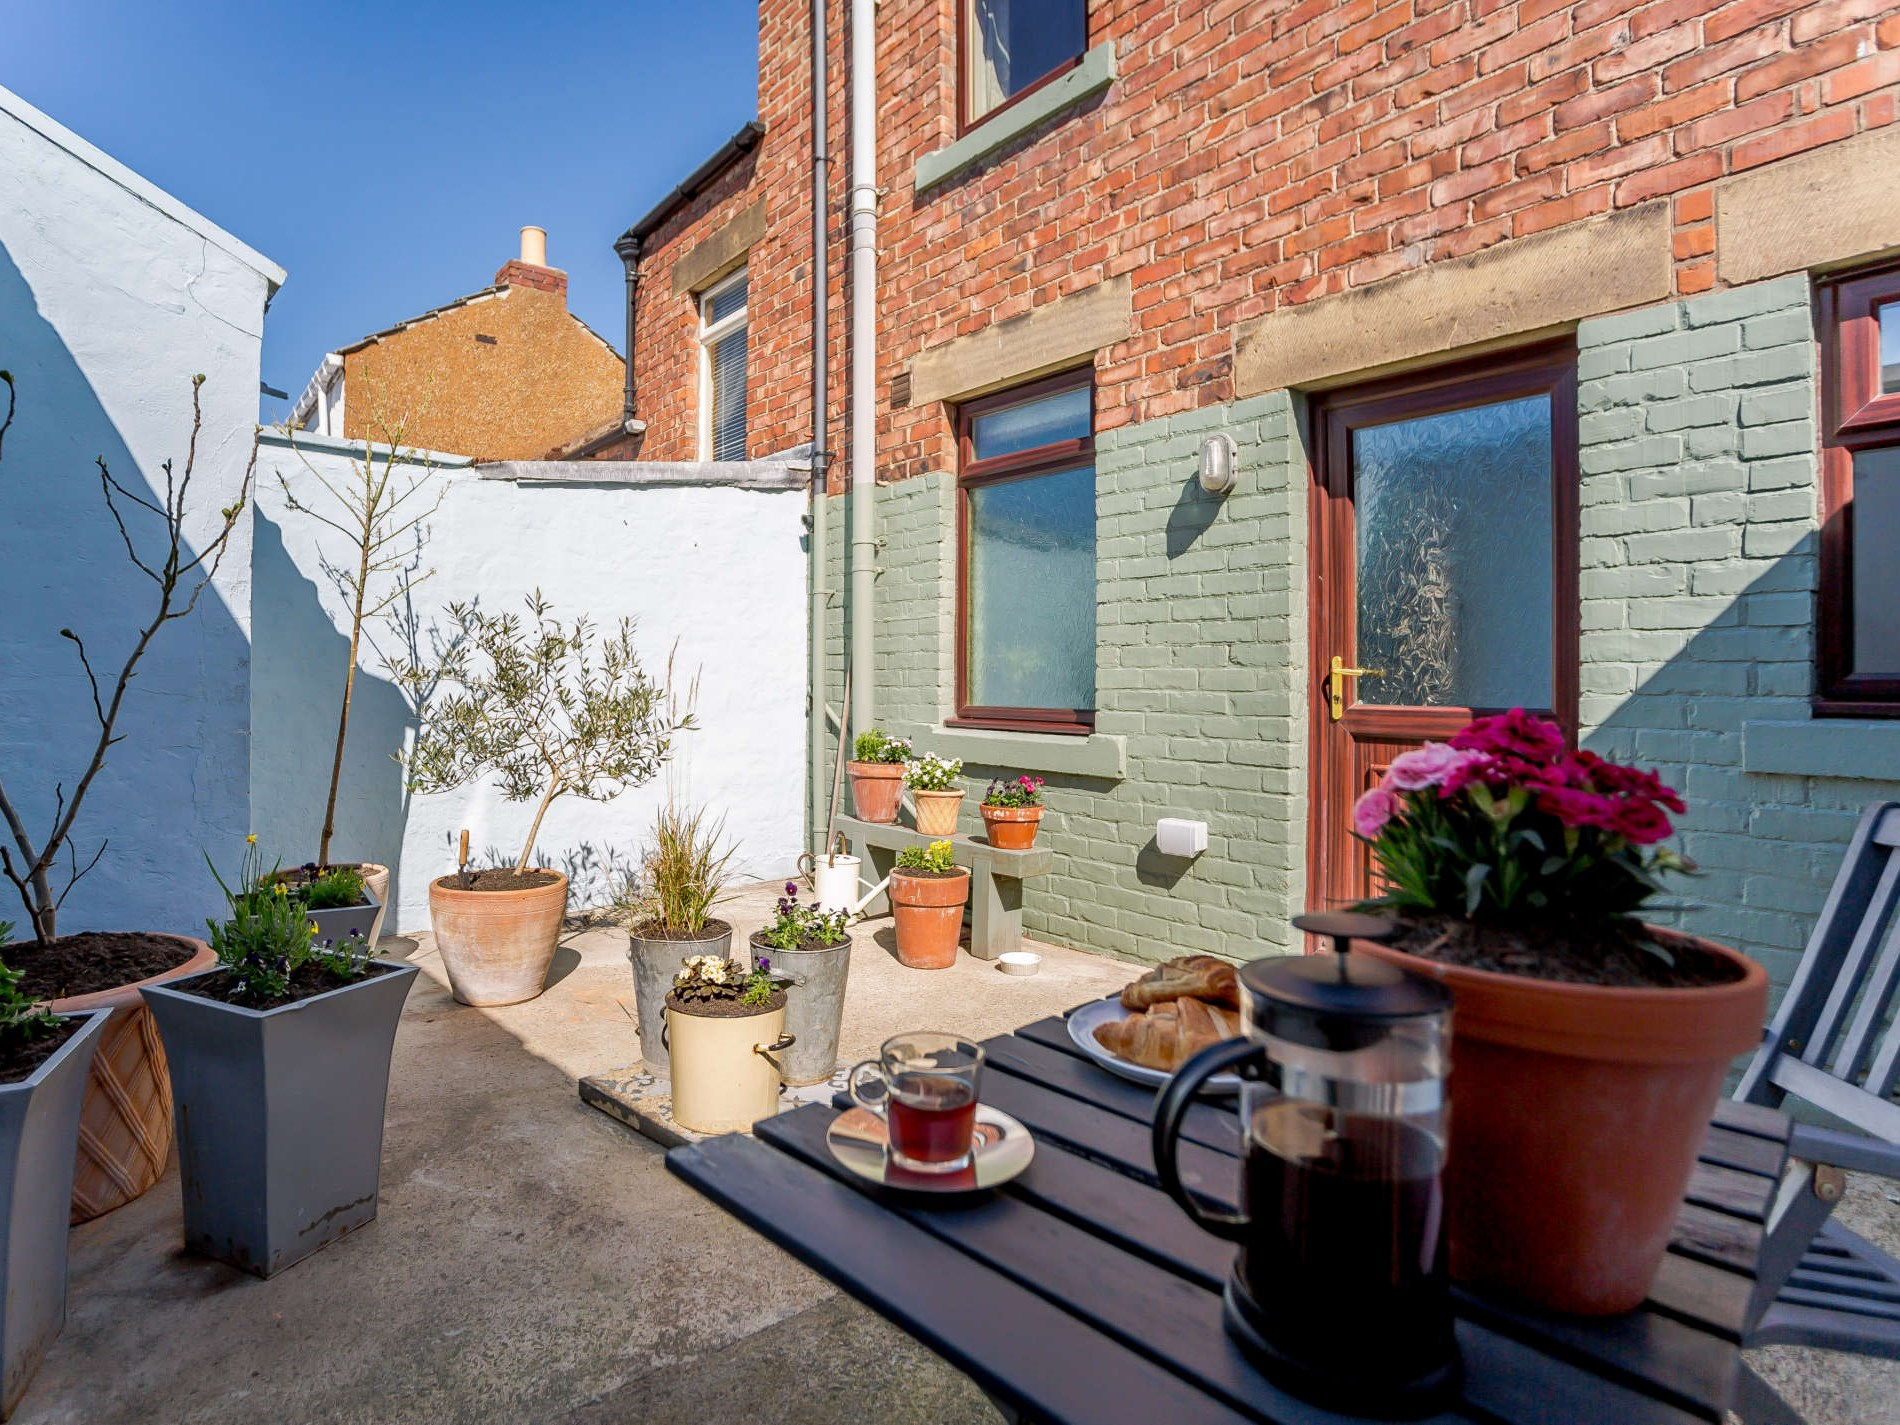 2 Bedroom House in Northumberland, Northumbria